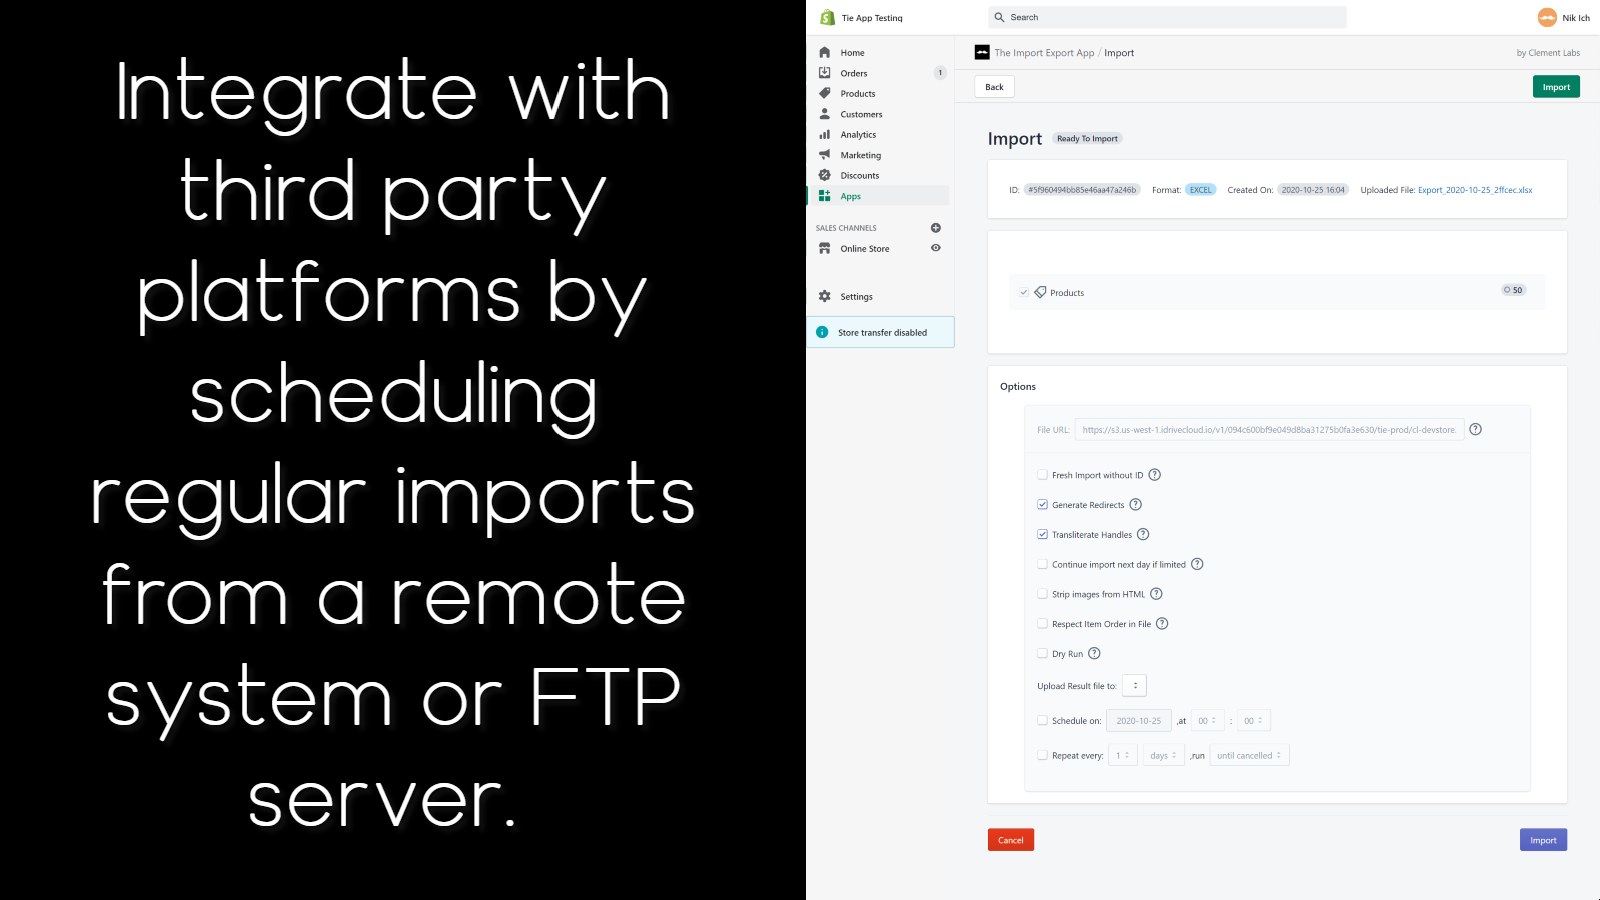 Import once or schedule imports to integrate with third parties